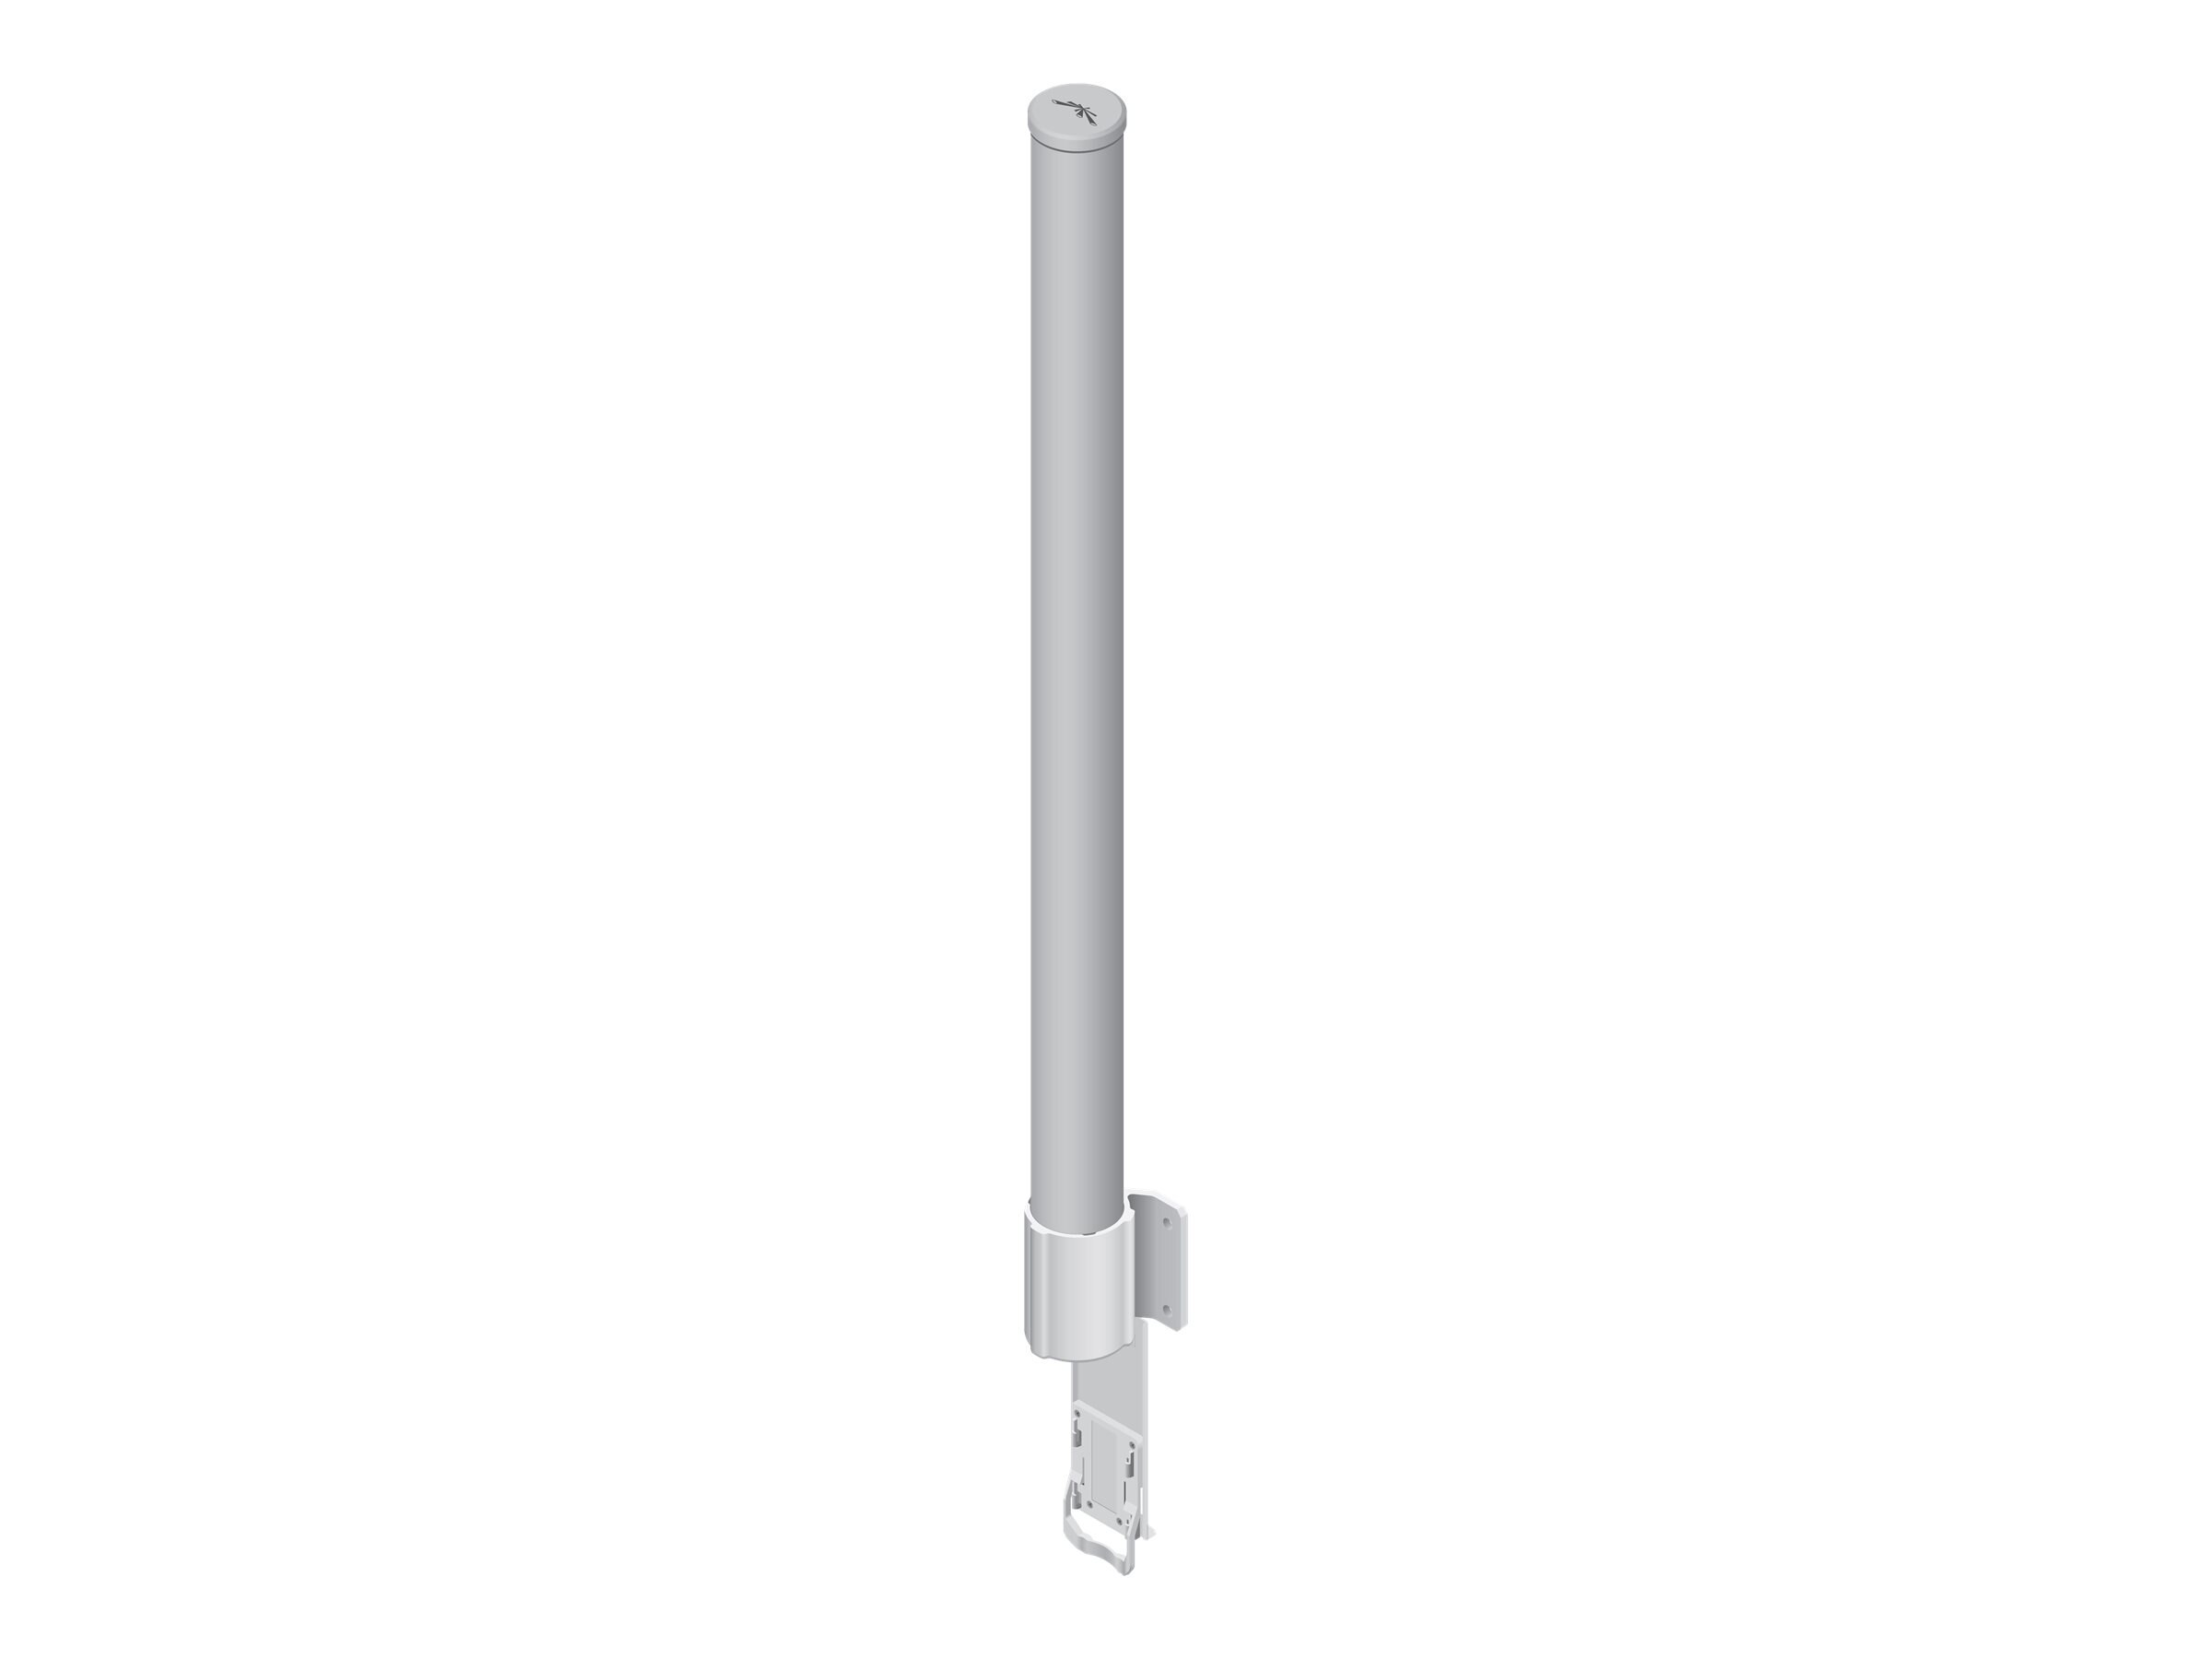 Ubiquiti 2GHZ Airmax Dual Omni 13DBI w Rocket Kit, AMO-2G13, 17684040, Wireless Antennas & Extenders